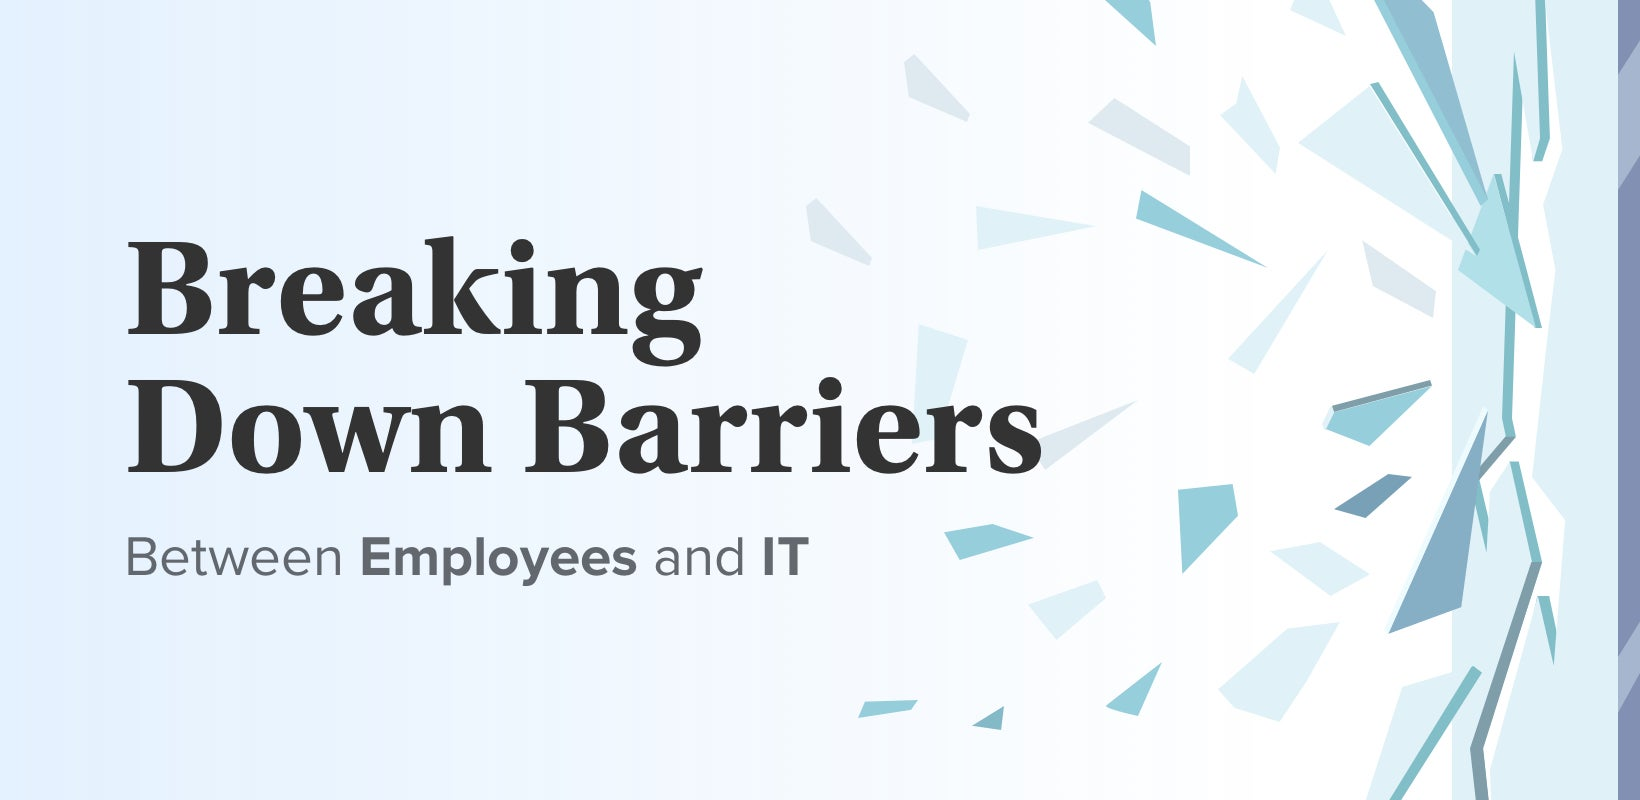 Breaking Down the Barrier Between Employees and IT